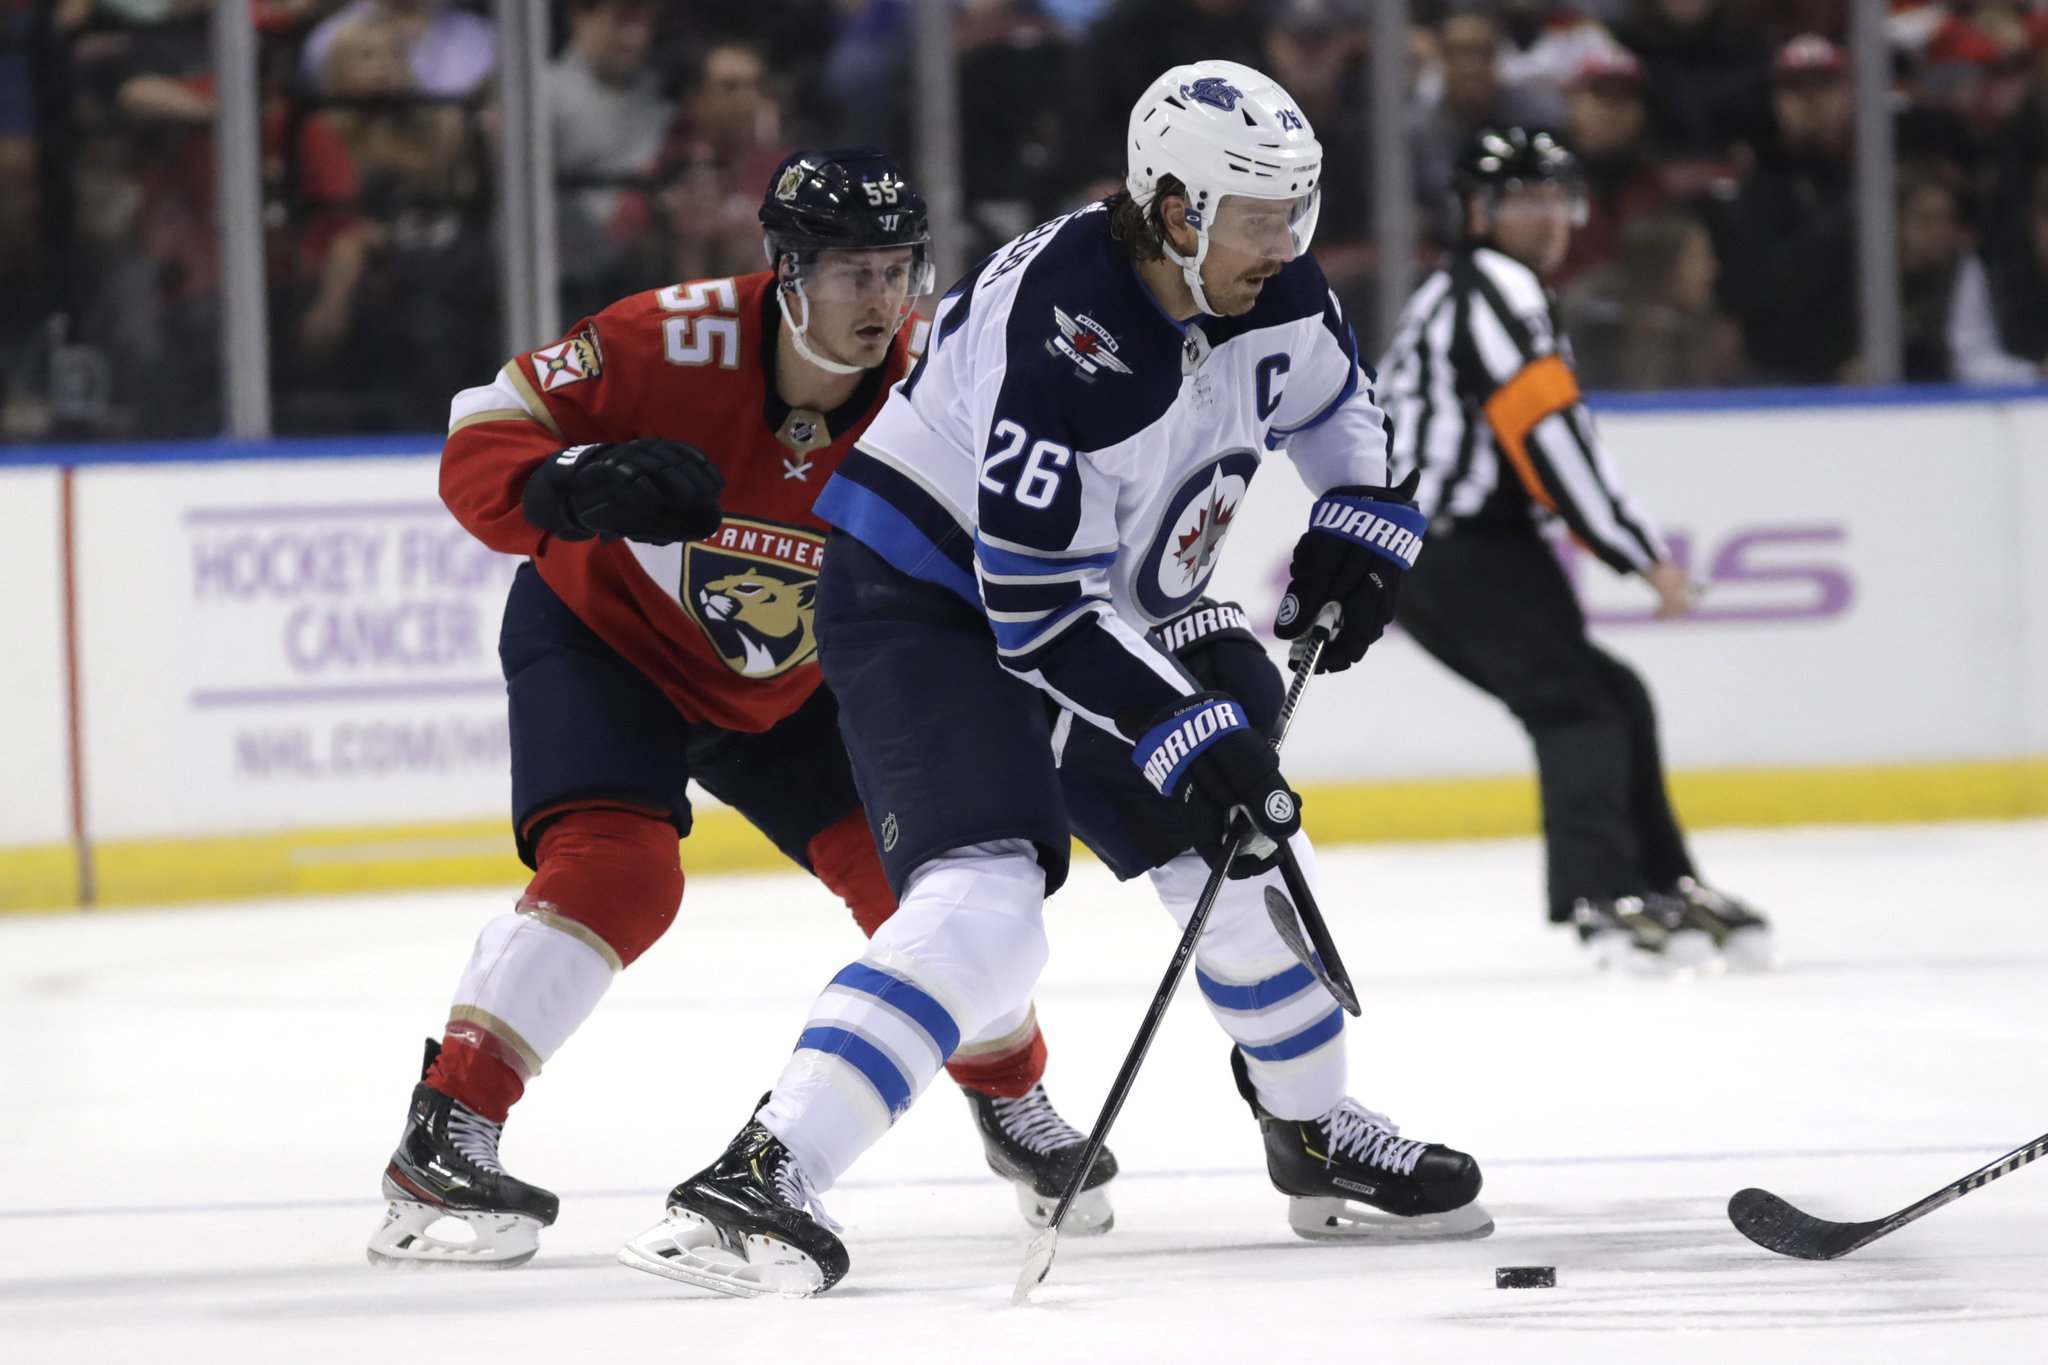 With the loss of Bryan Little, Blake Wheeler has been moved to centre. (Lynne Sladky / The Associated Press)</p>